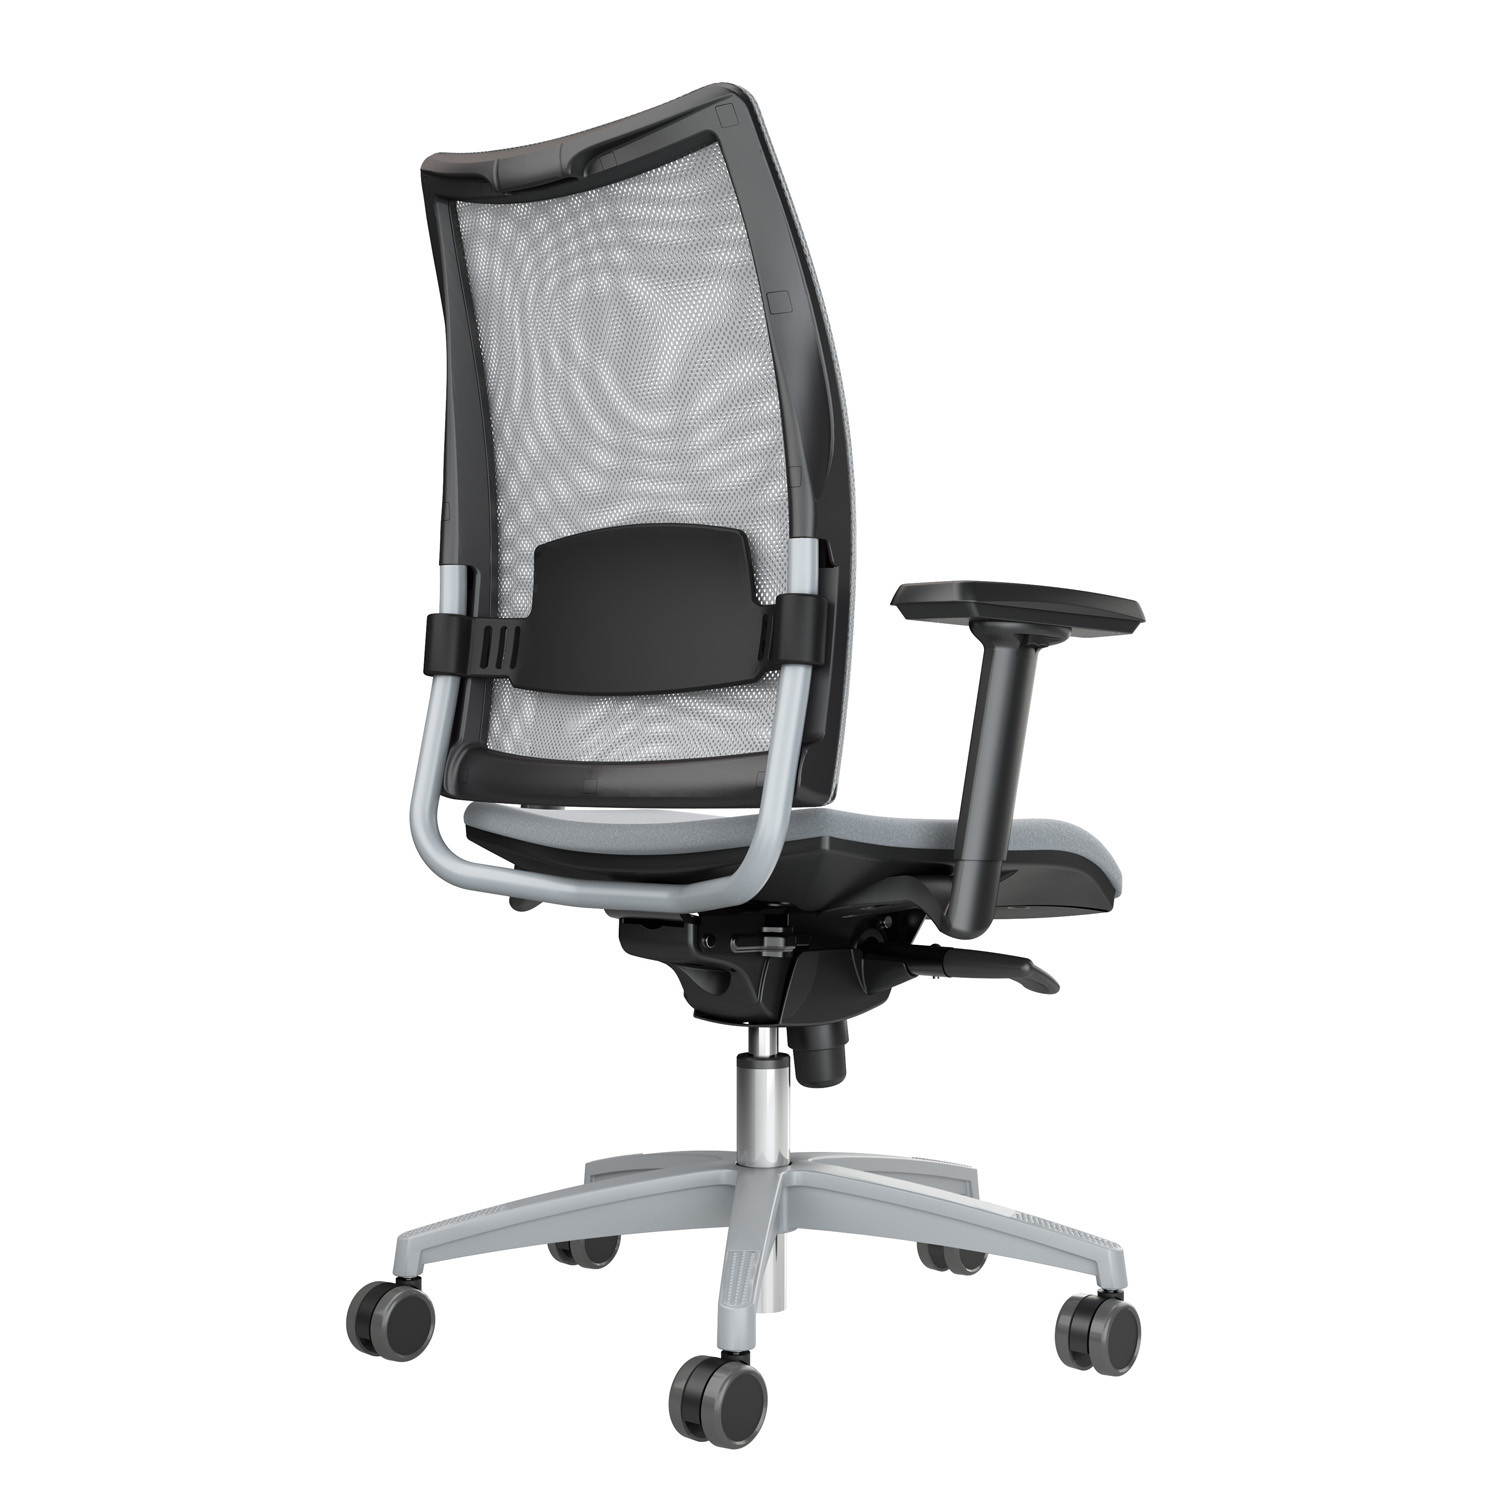 Overtime Desk Chair with Lumbar Support